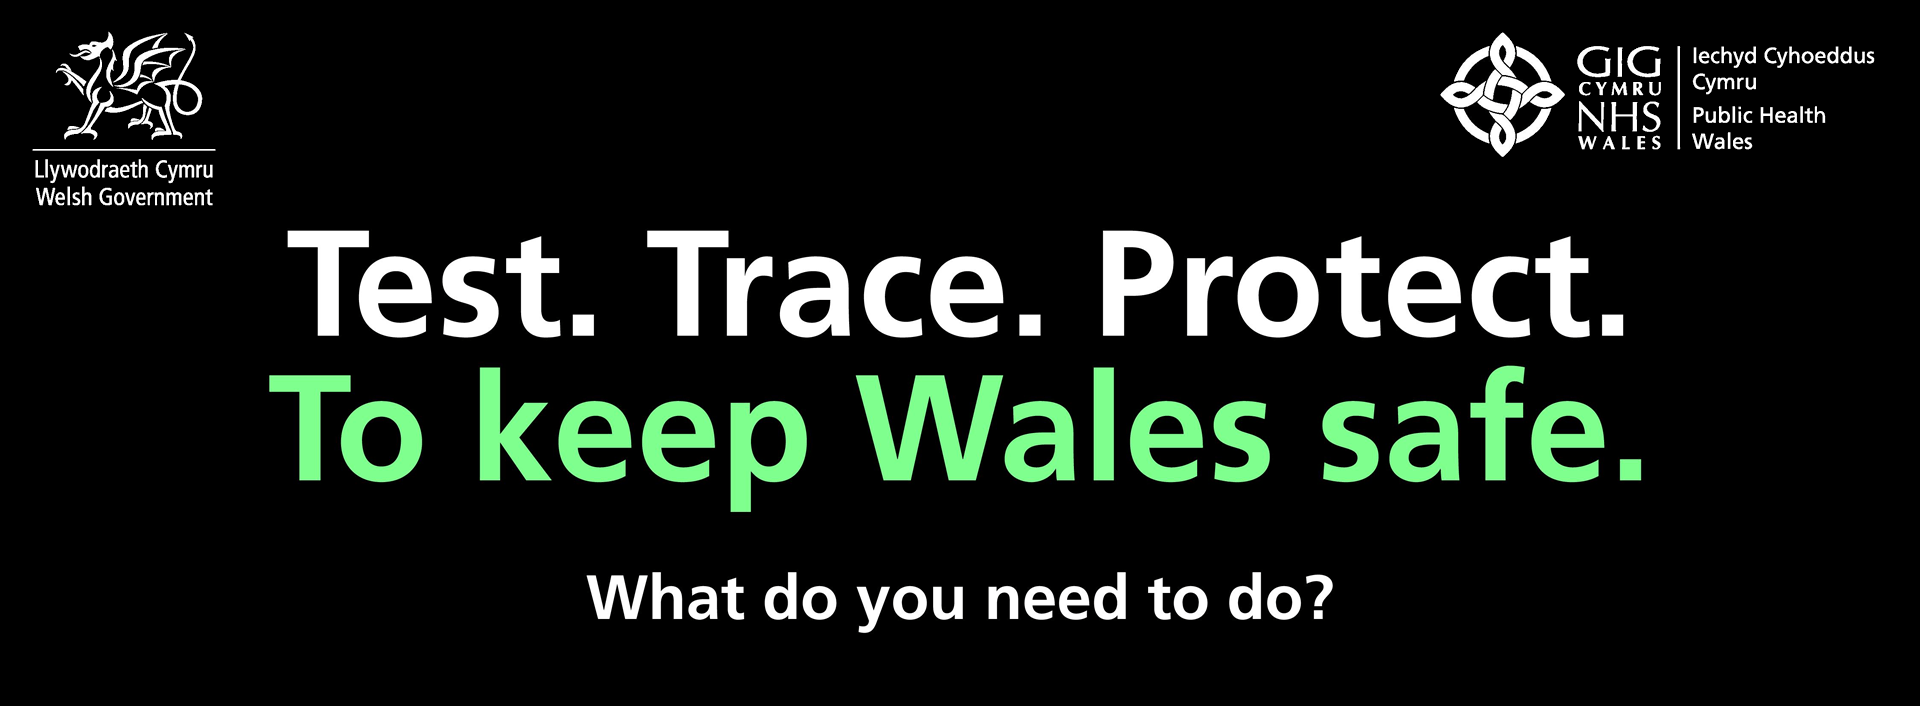 Test. Trace. Protect. To Keep Wales safe.